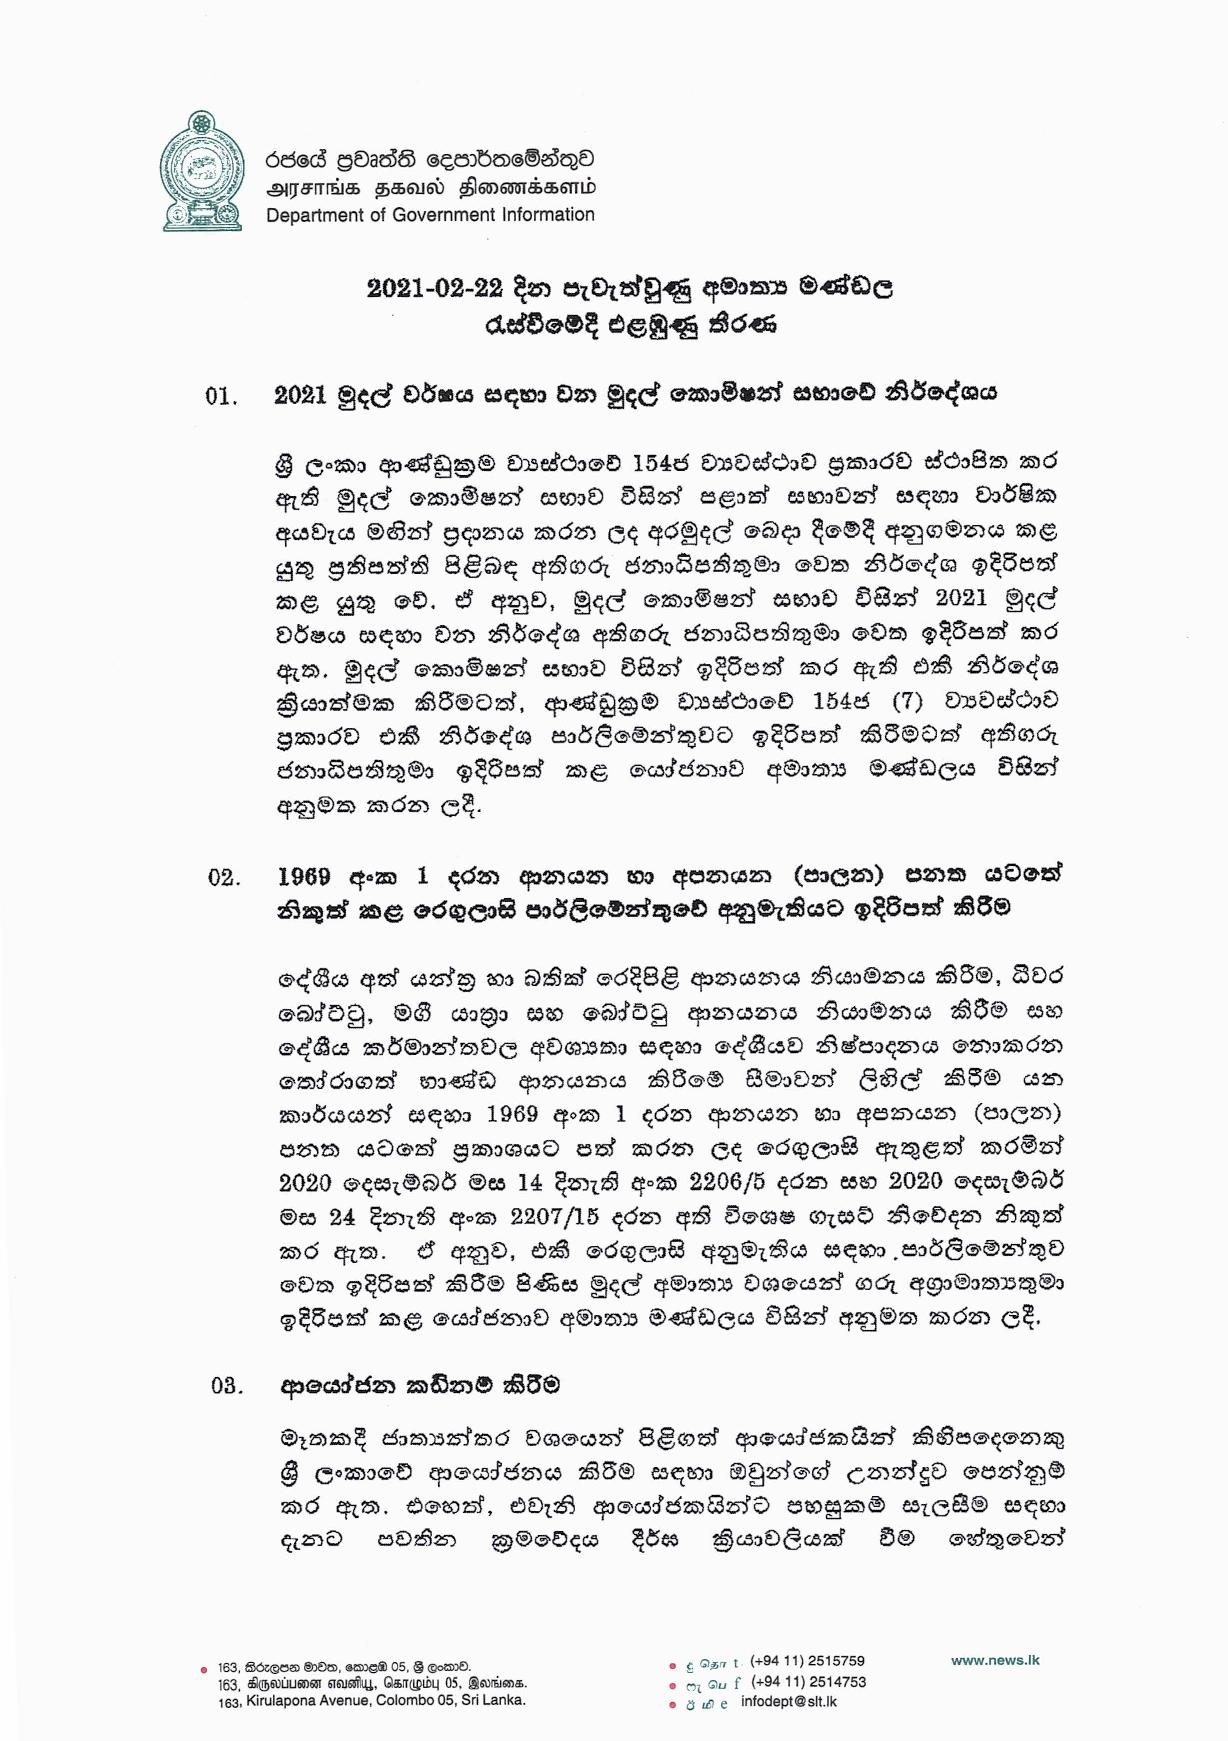 Cabinet Decision on 22.02.2021 page 001